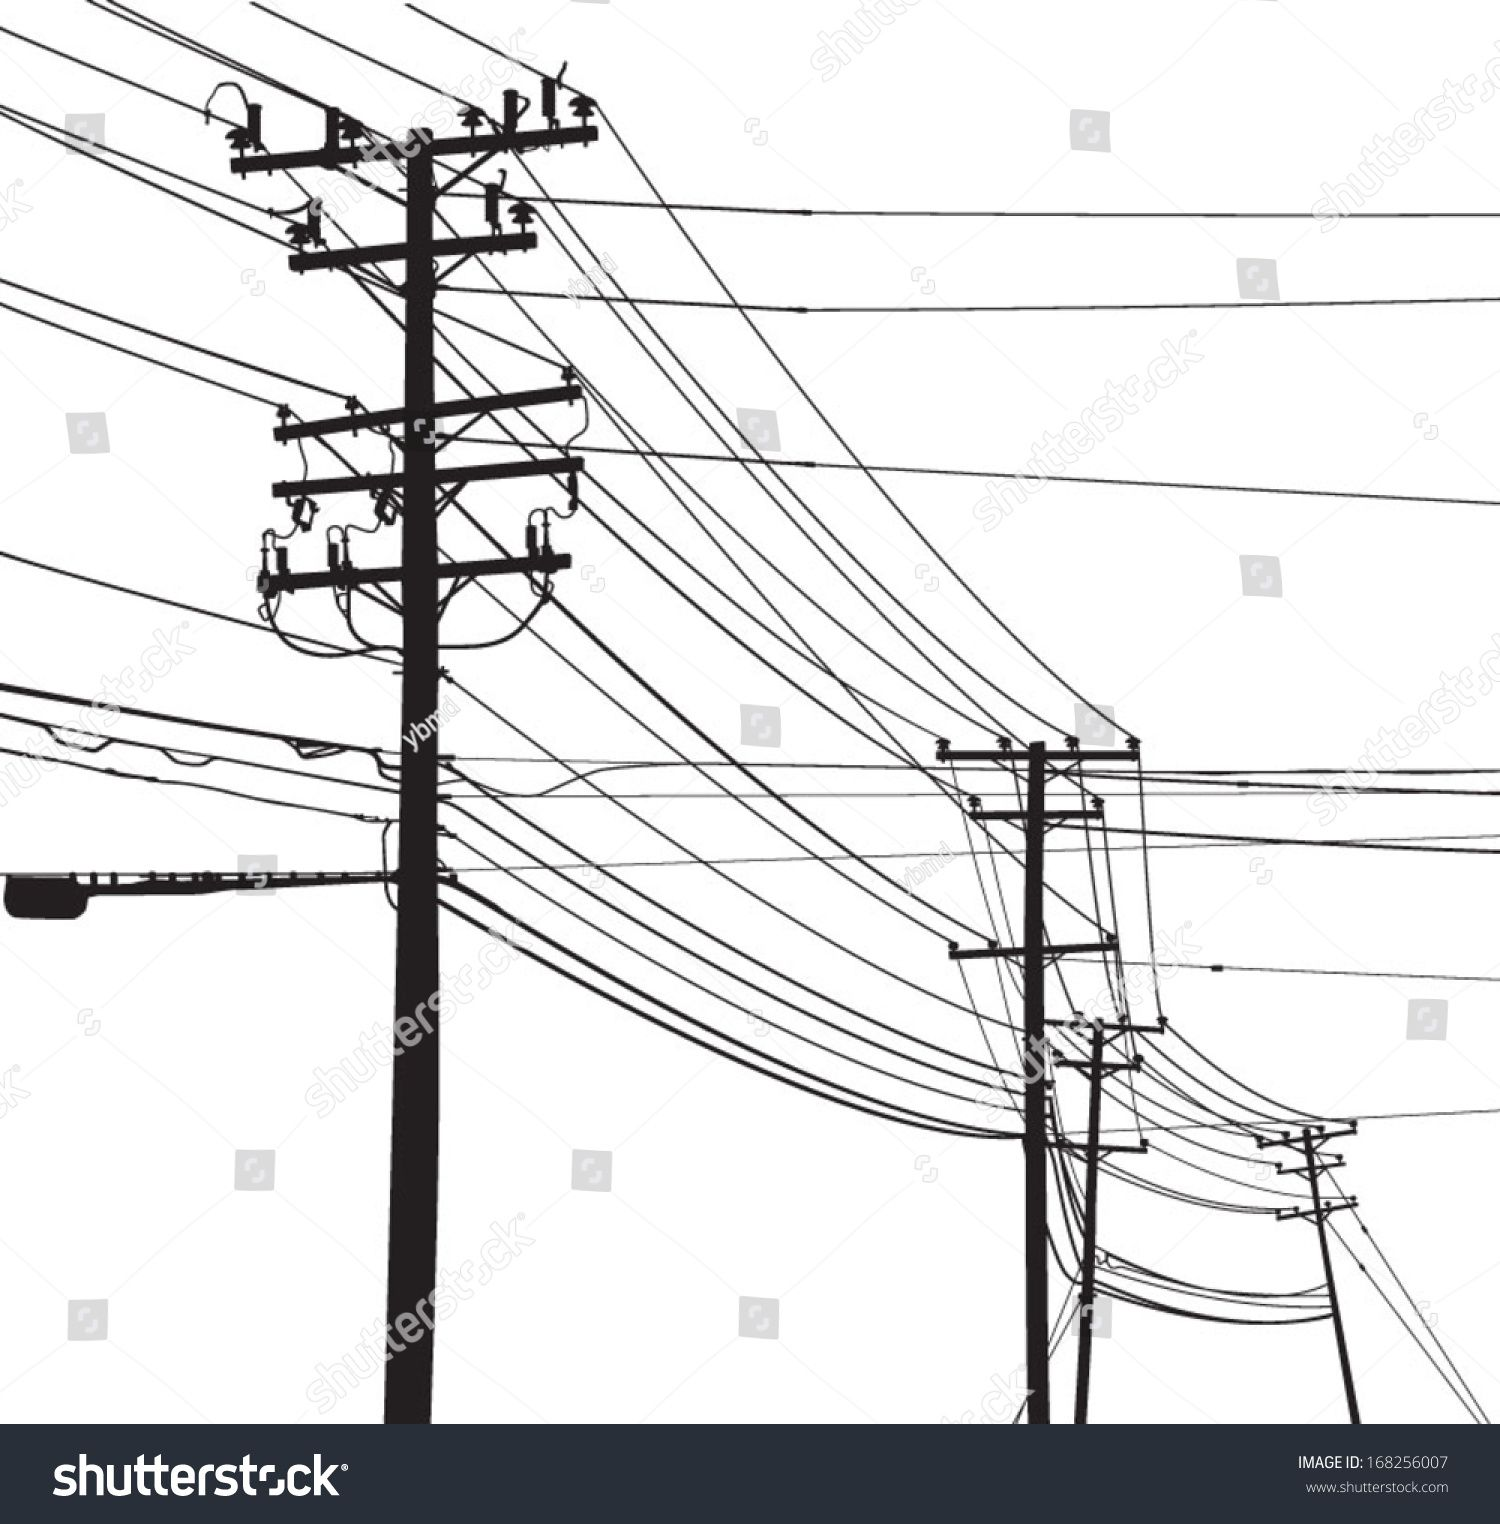 1500x1524 Vector Silhouette Of Telephone Poles And Utility Poles